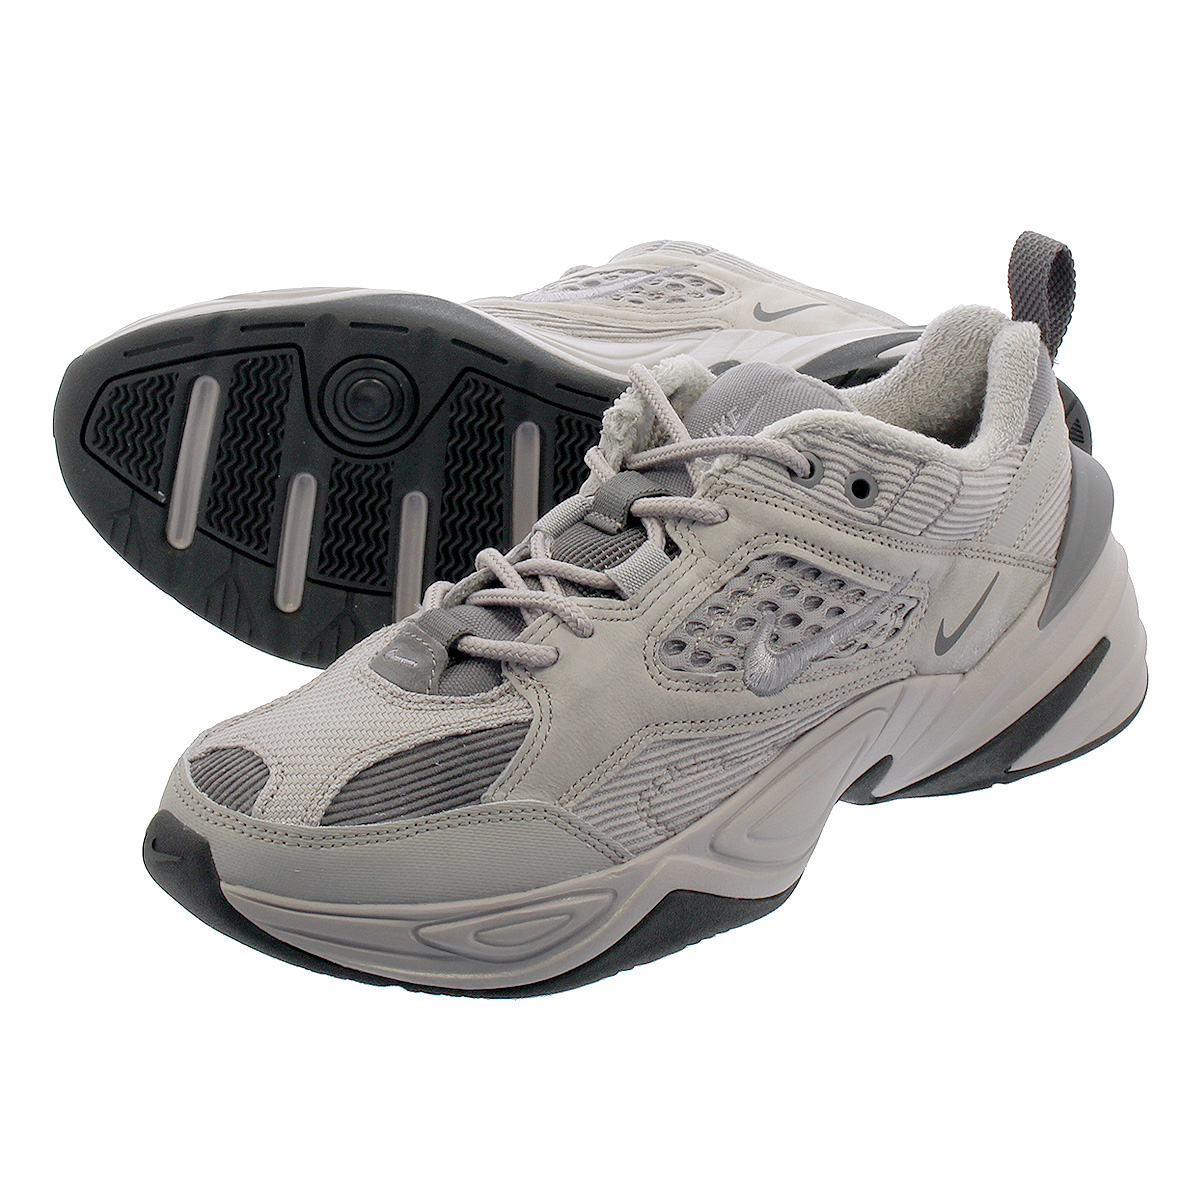 NIKE M2K TEKNO SP ナイキ M2K テクノ SP ATMOSPHERE GREY/WHEAT/SEQUOIA